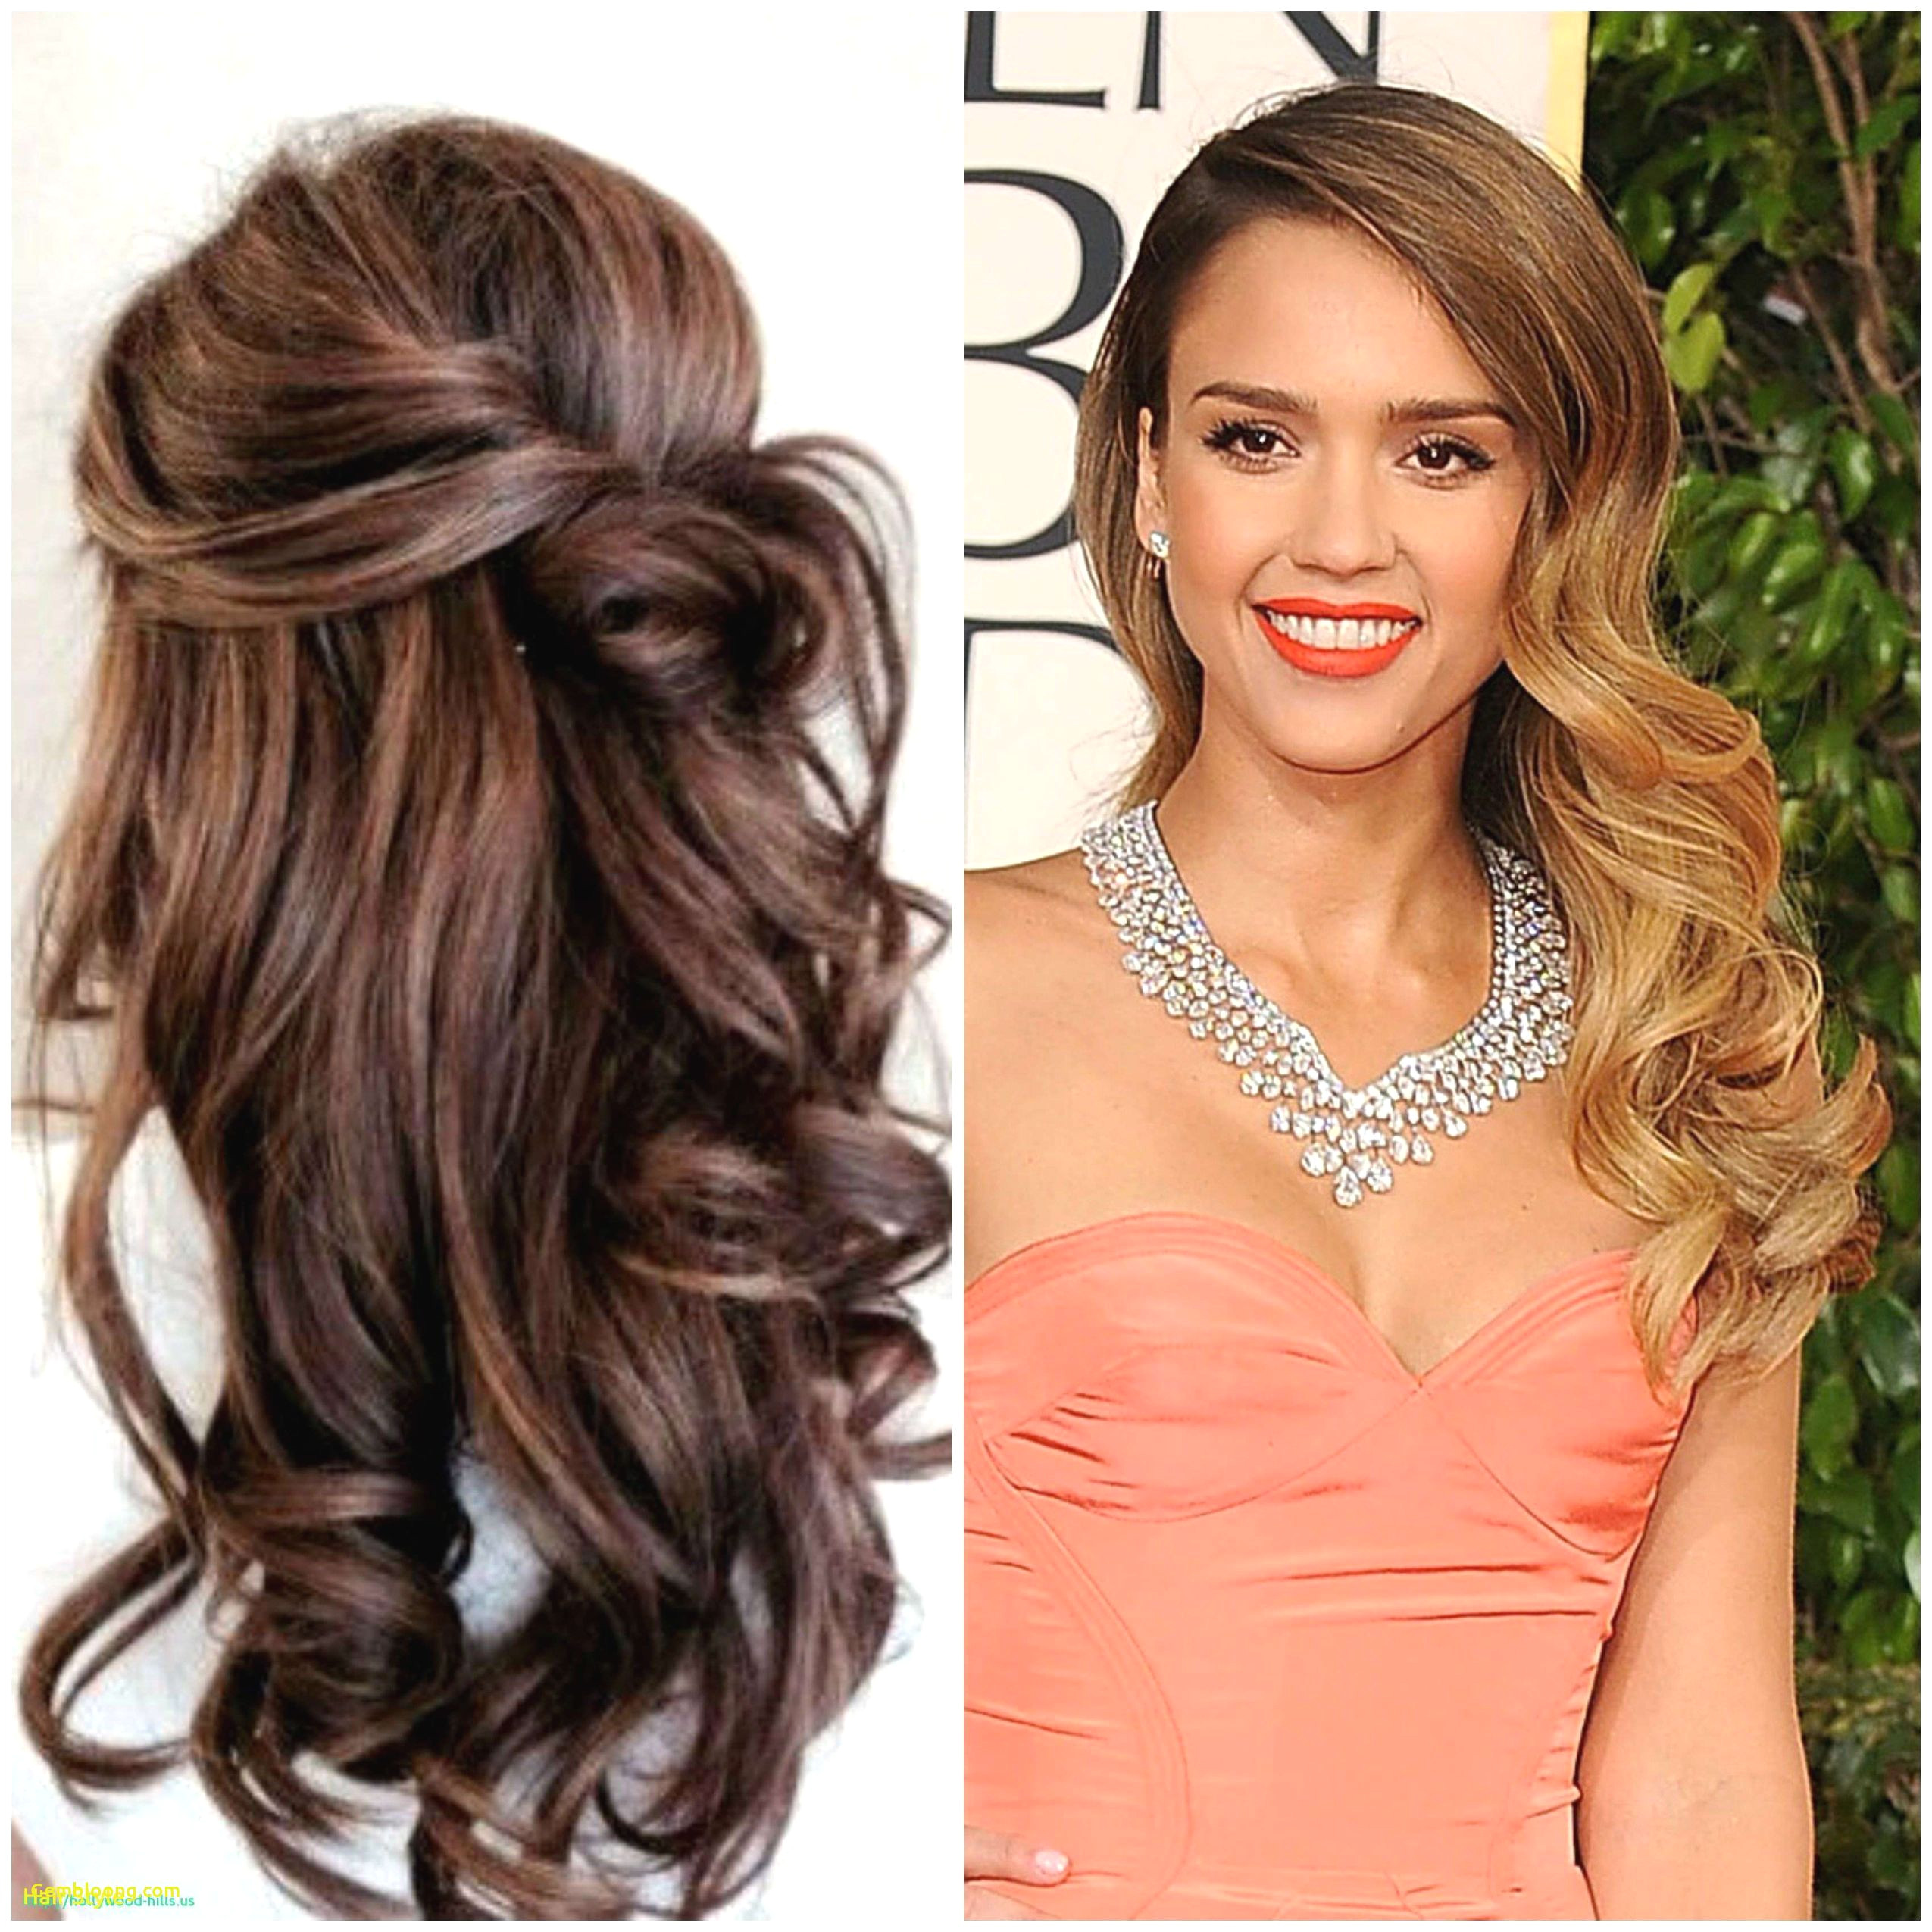 long curly hairstyles with bangs good hairstyles for long hair 2015 luxury i pinimg 1200x 0d Source image lcopublicity